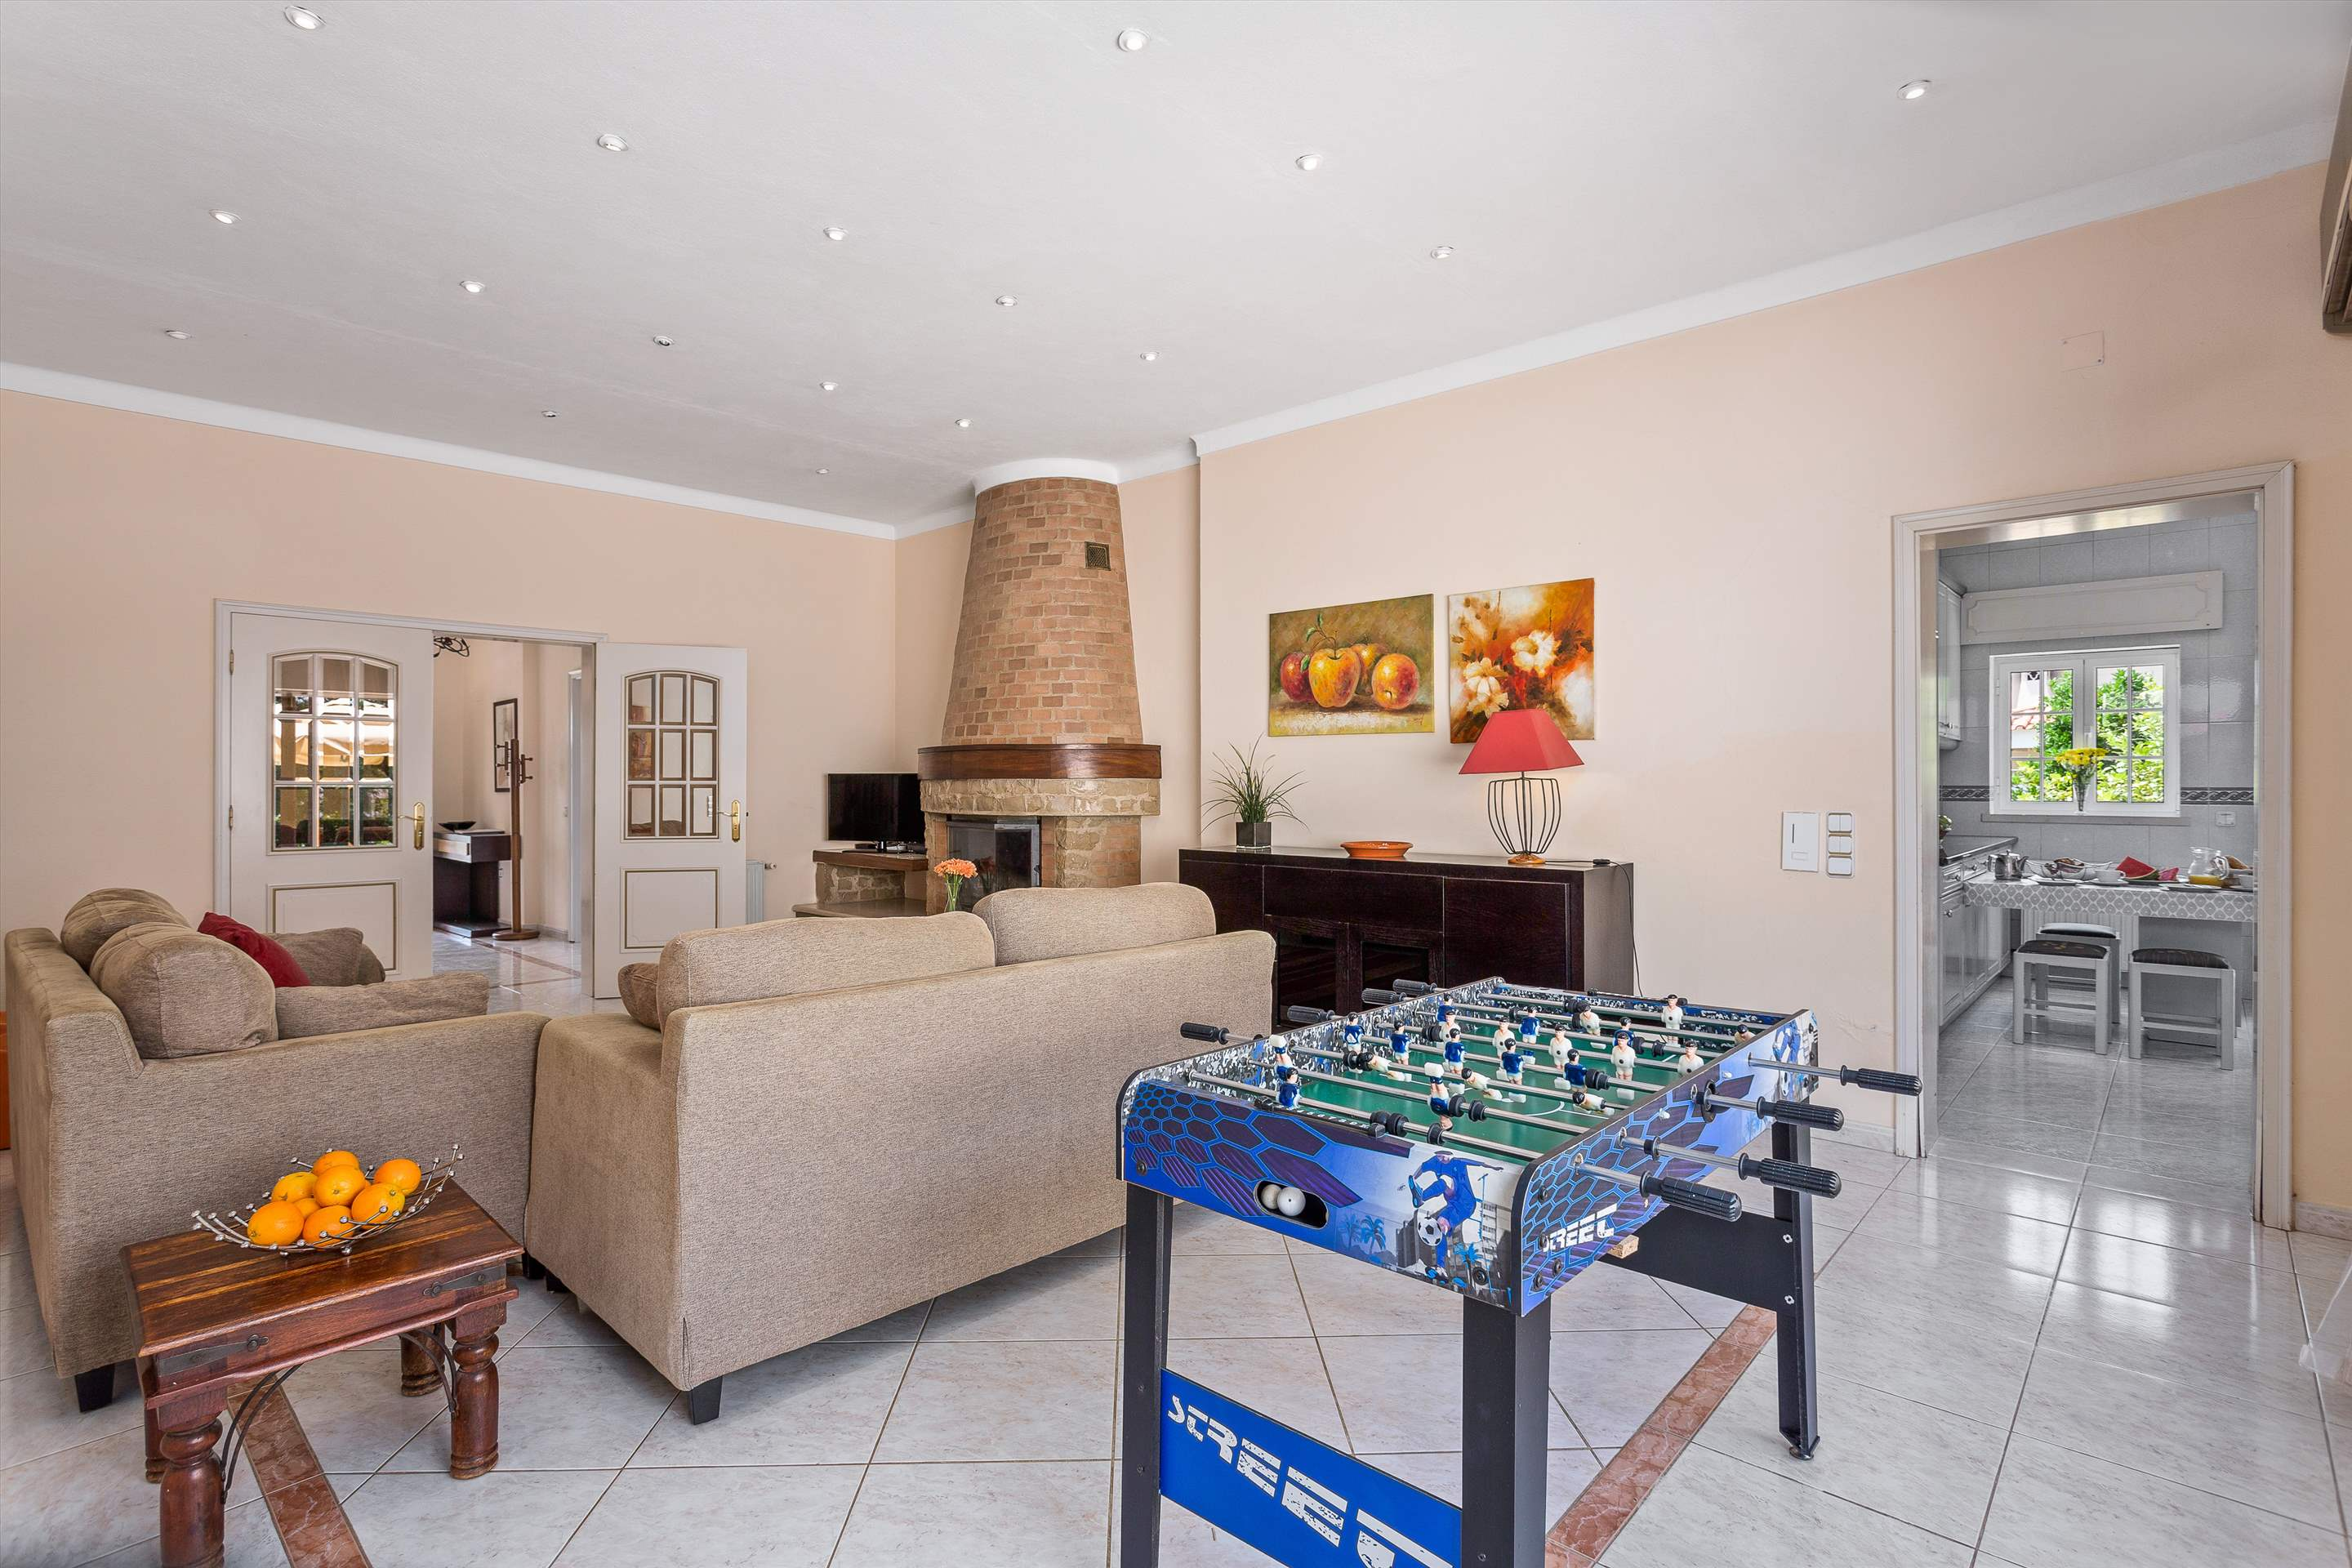 Quinta do Bruno, Eight Bedroom Rate including annexes, 8 bedroom villa in Vilamoura Area, Algarve Photo #10